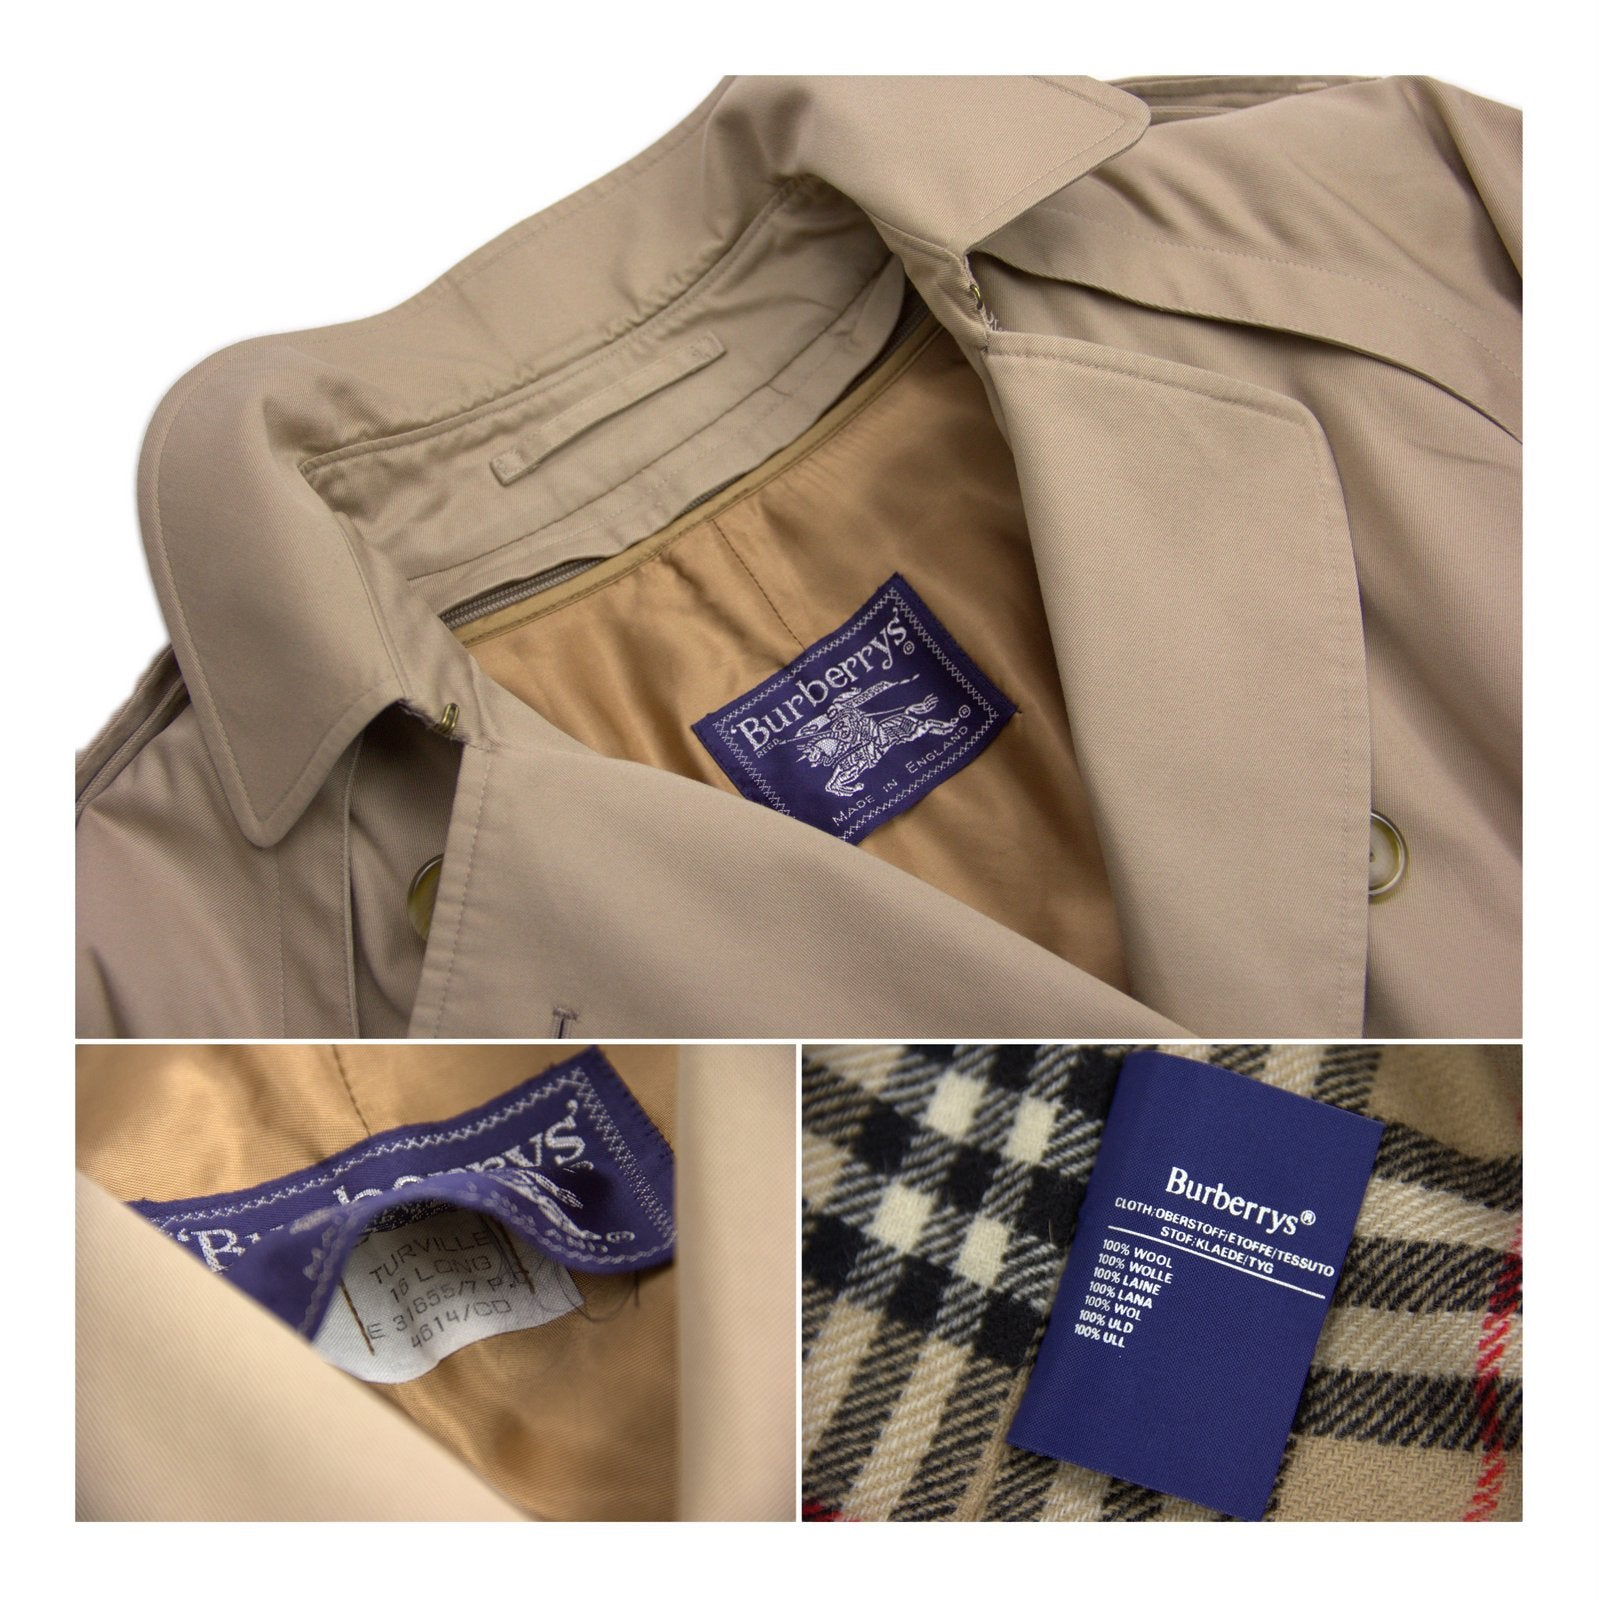 Burberry Vintage Tan Brown Trench Coat With Wool Liner Size XL - secondfirst